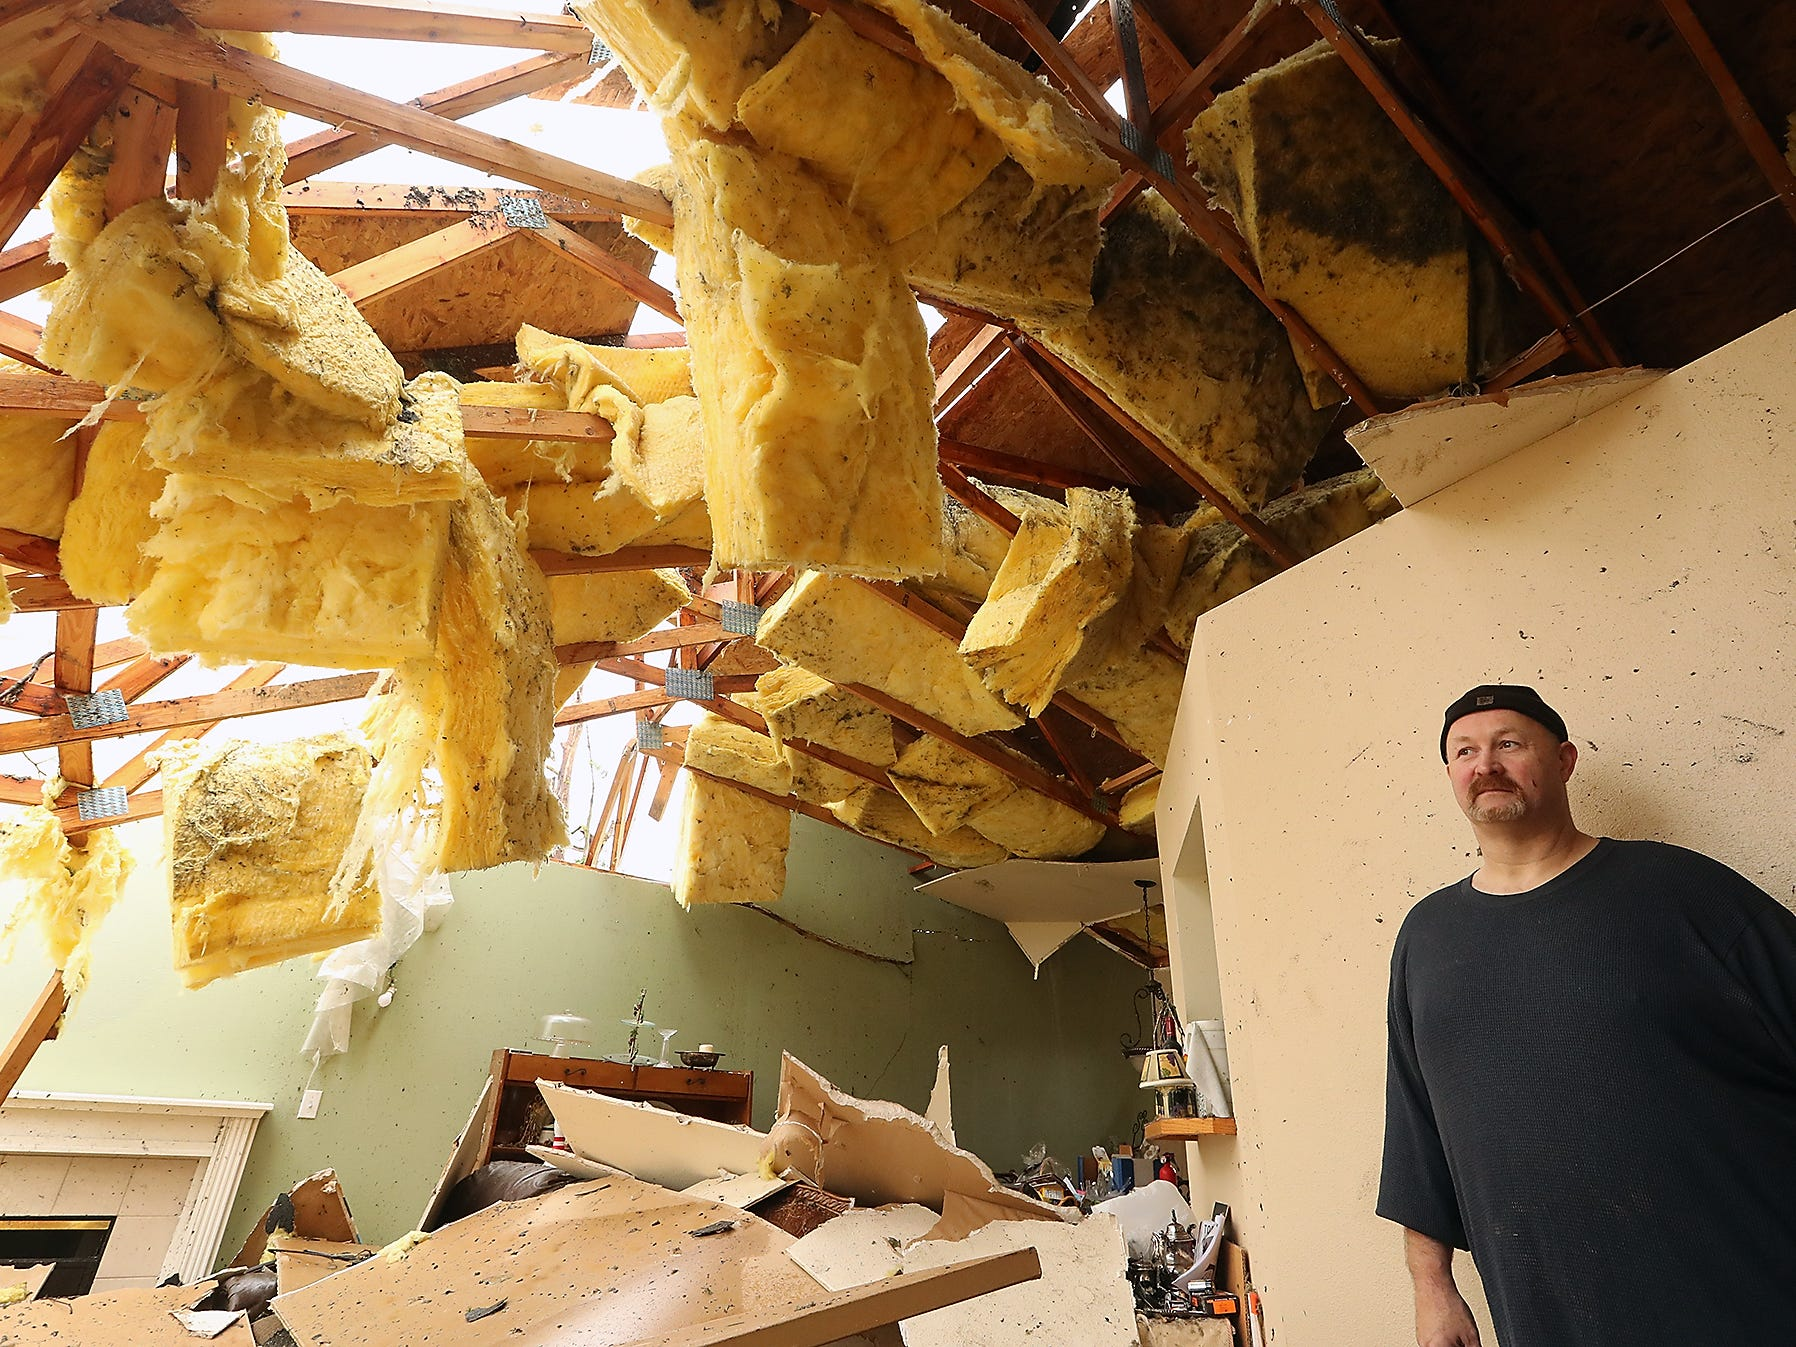 Aaron Crain in the living room of his heavily damaged home on Tiburon Court in Port Orchard on Wednesday, December 19, 2018.